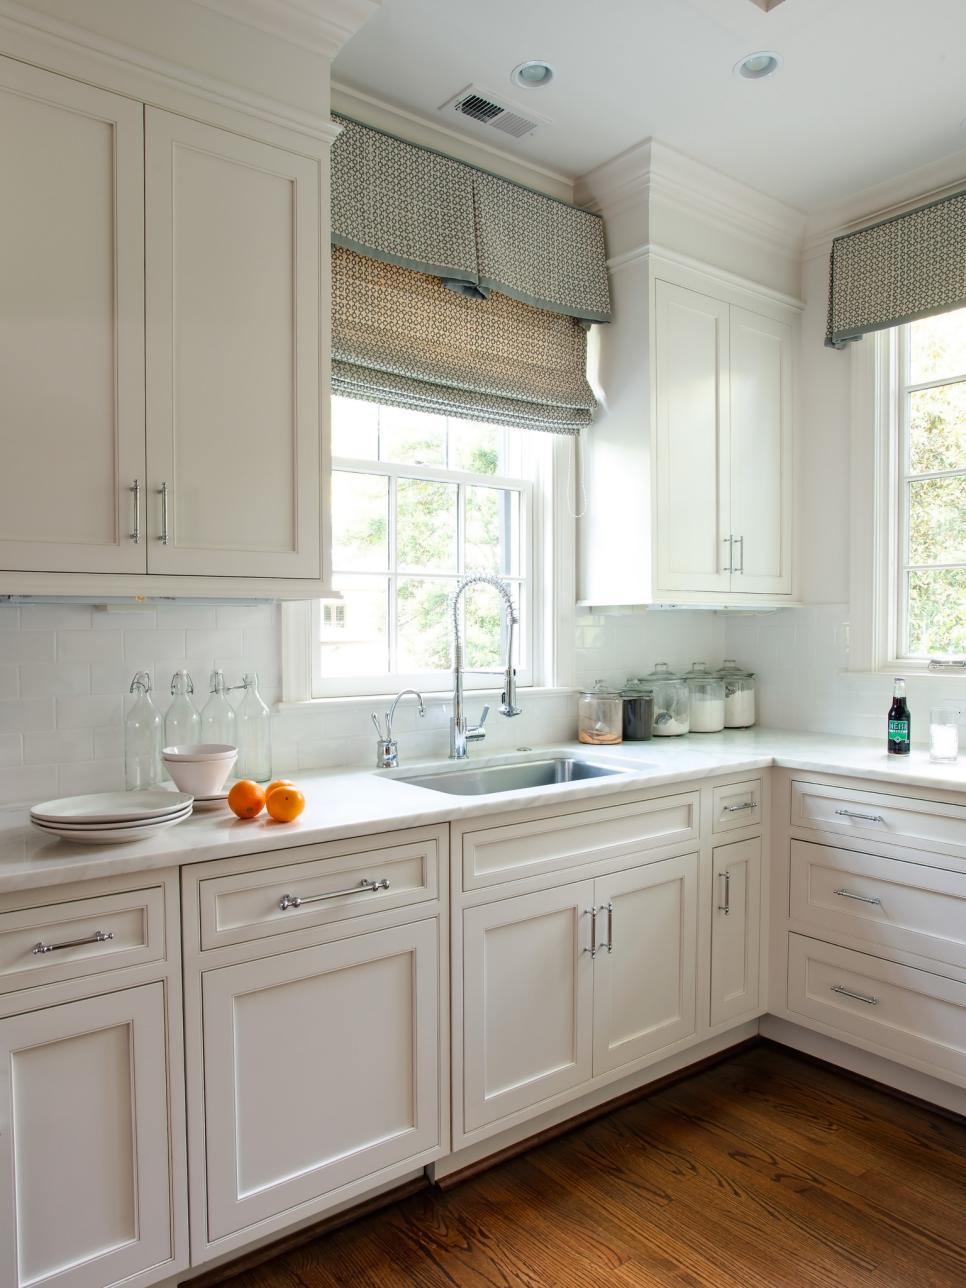 Inspiration kitchen window treatments coordinated charm. fabric-based window treatments ... sawwgvs